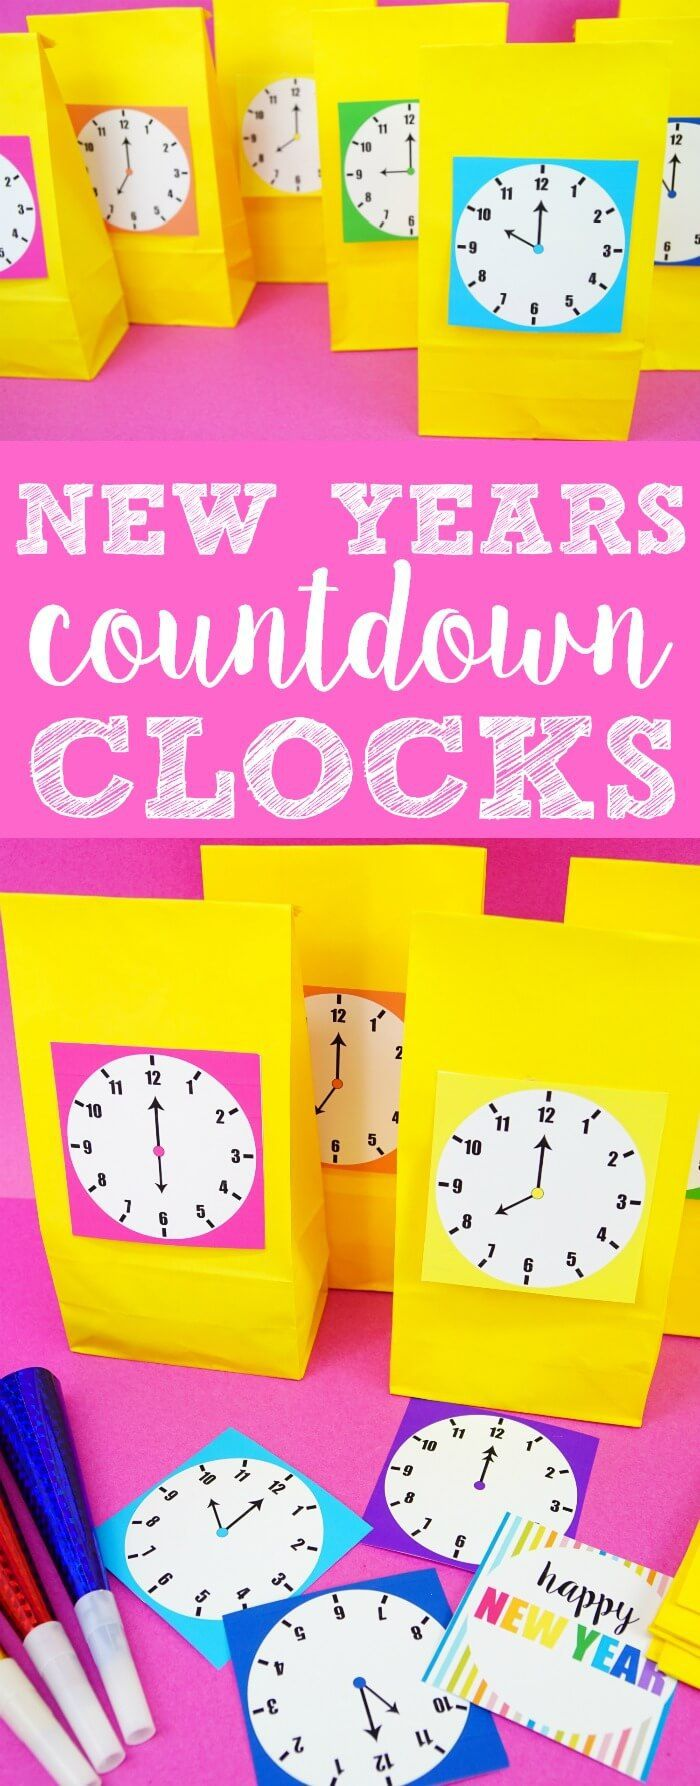 New Years Countdown Clock - Made with HAPPY - https://www.madewithhappy.com/new-years-countdown-clock/